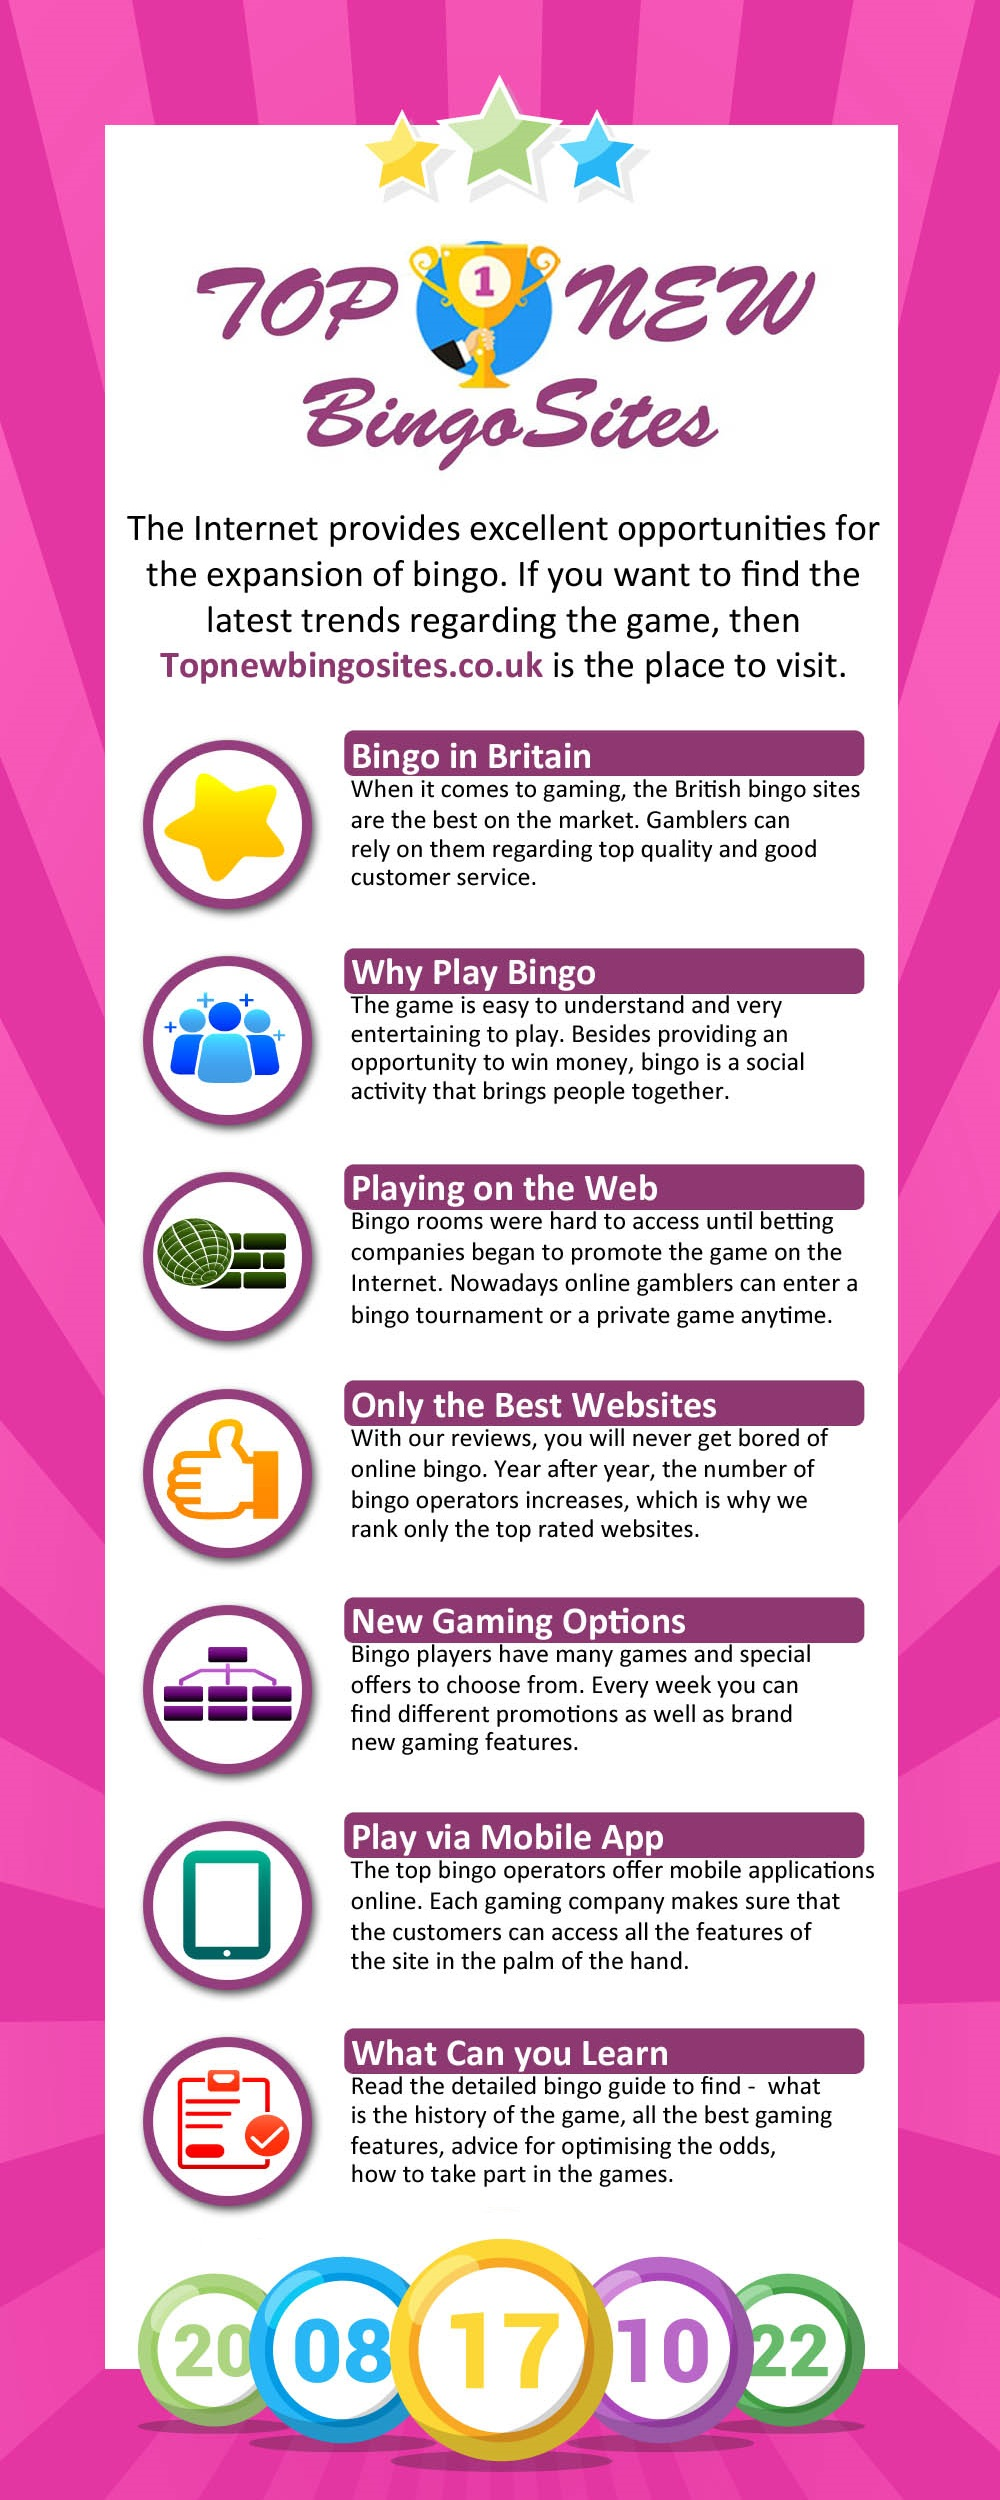 Infograhic for betting on the new operators for bingo gaming on the internet!